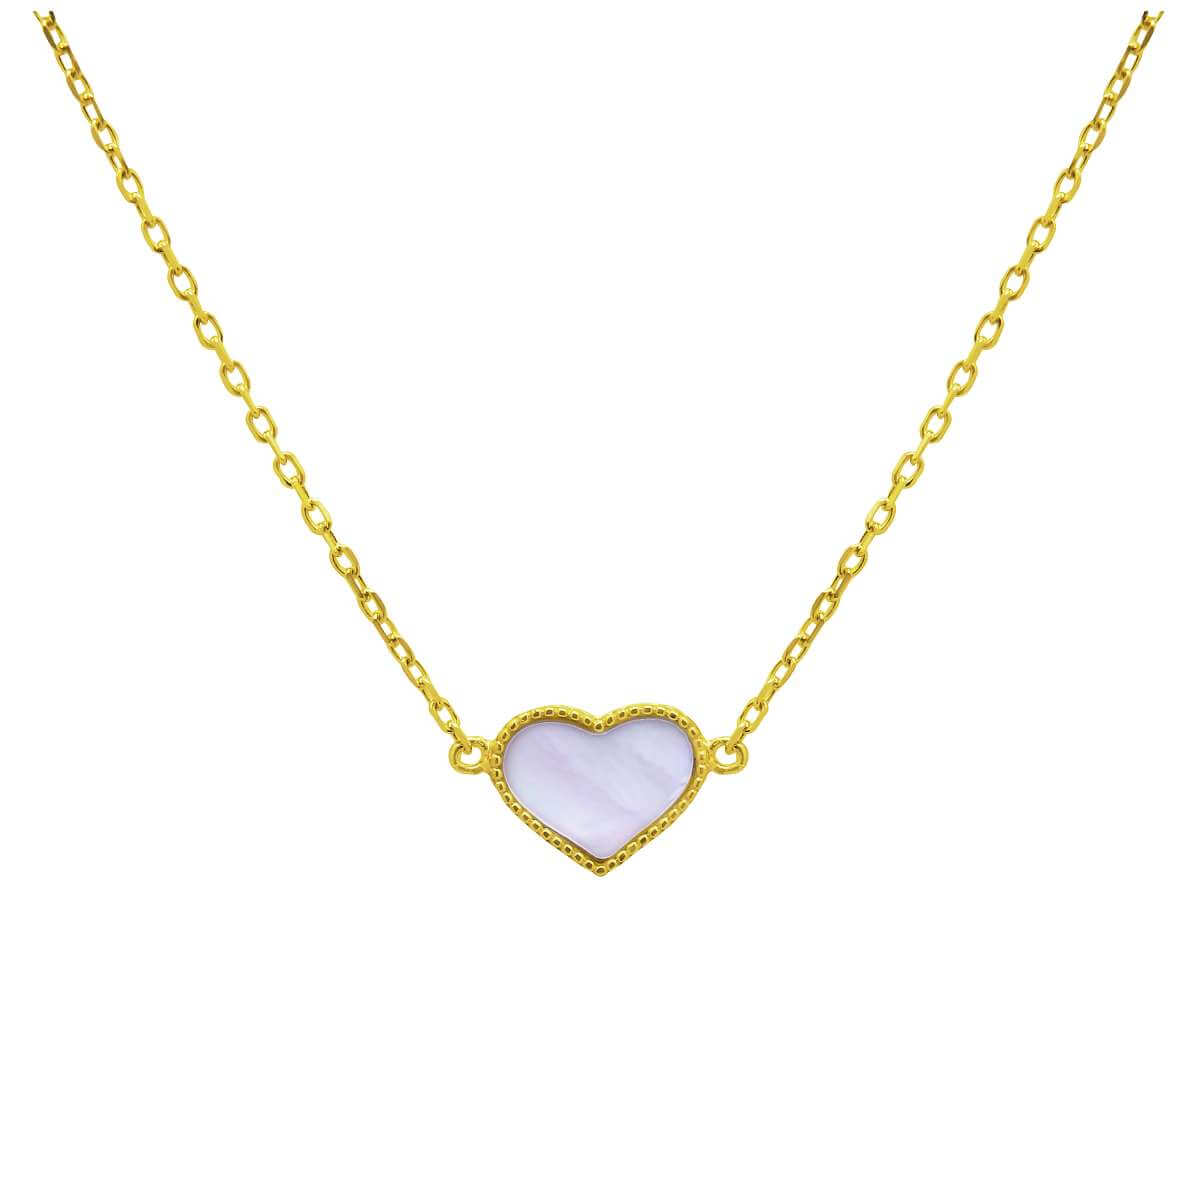 Gold Plated Sterling Silver Mother of Pearl Heart Necklace